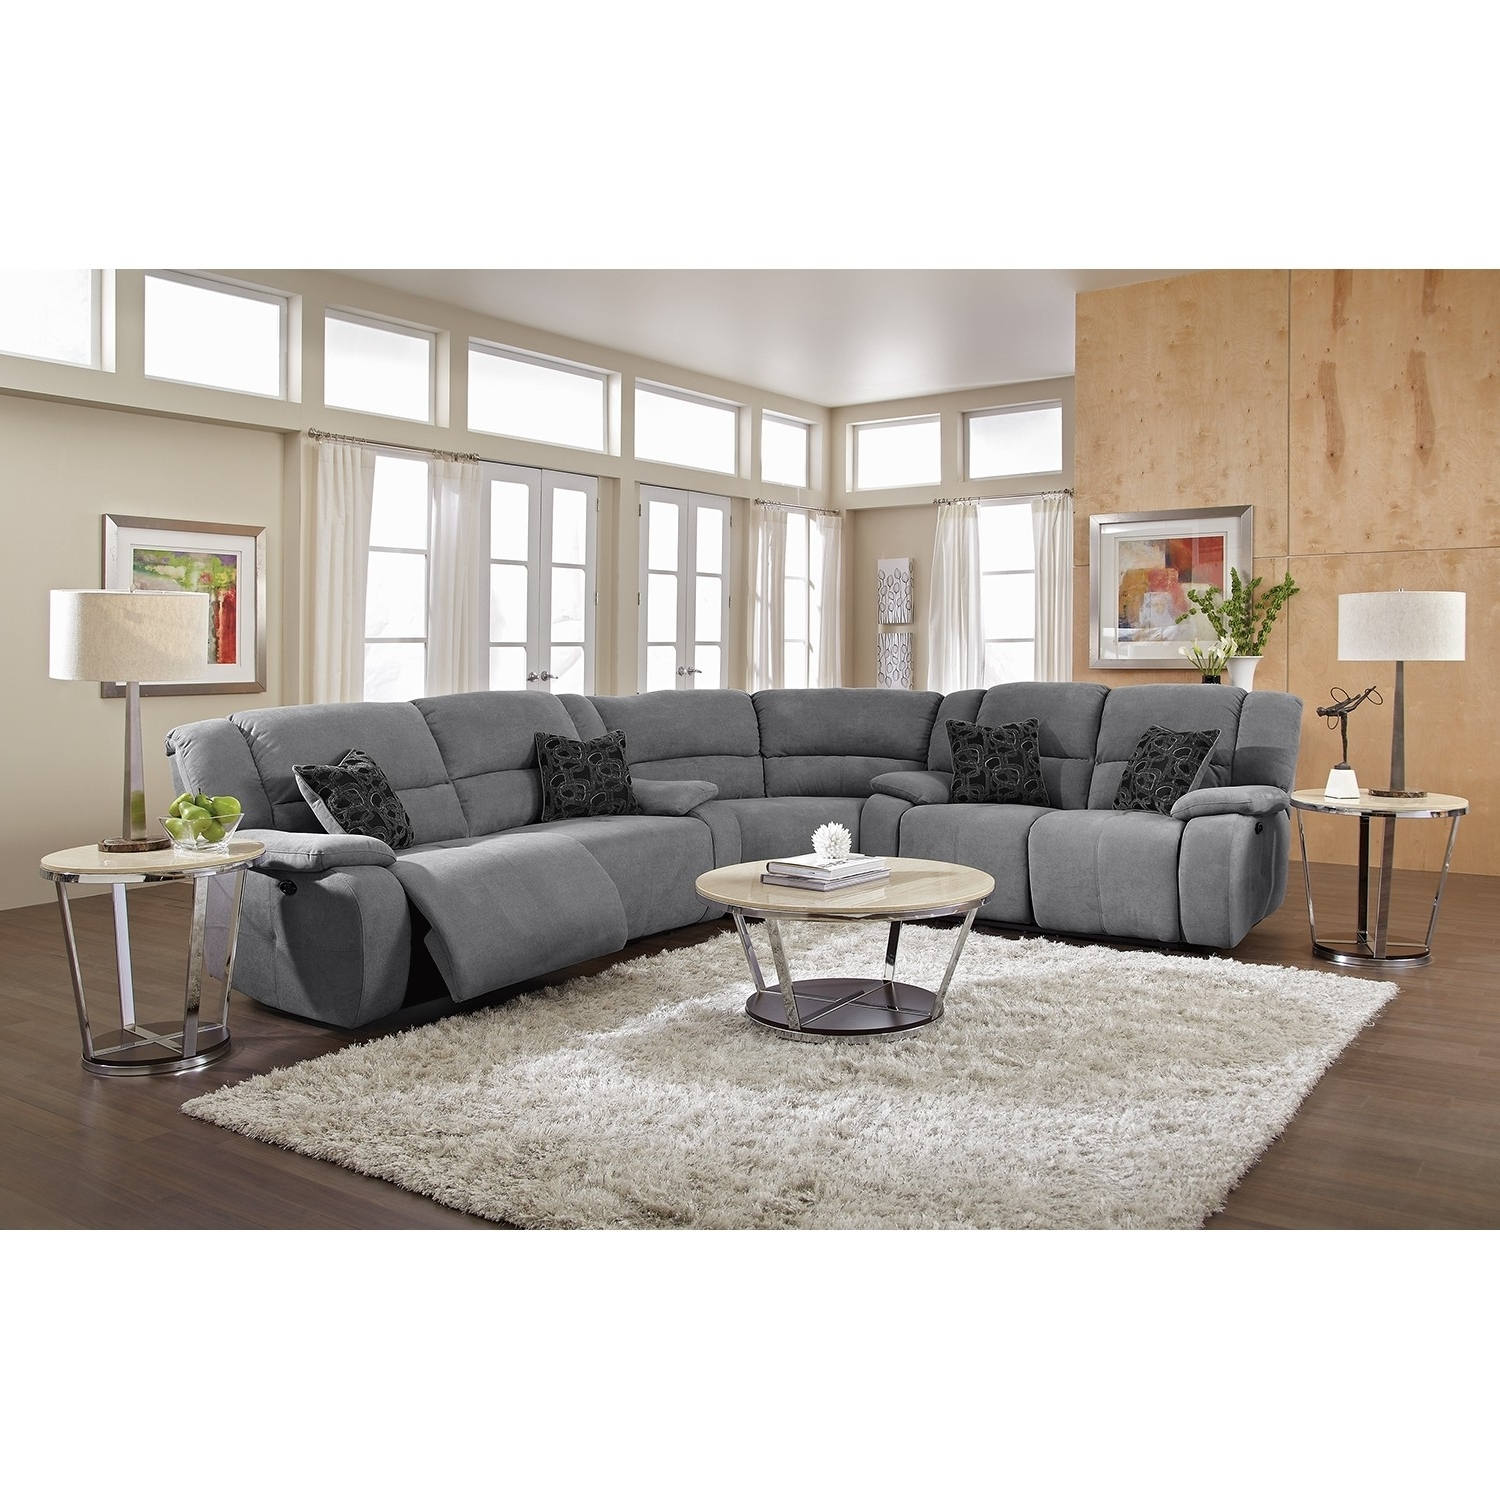 Curved Sectional Recliner Sofas – Tourdecarroll Regarding Preferred Curved Recliner Sofas (View 20 of 20)